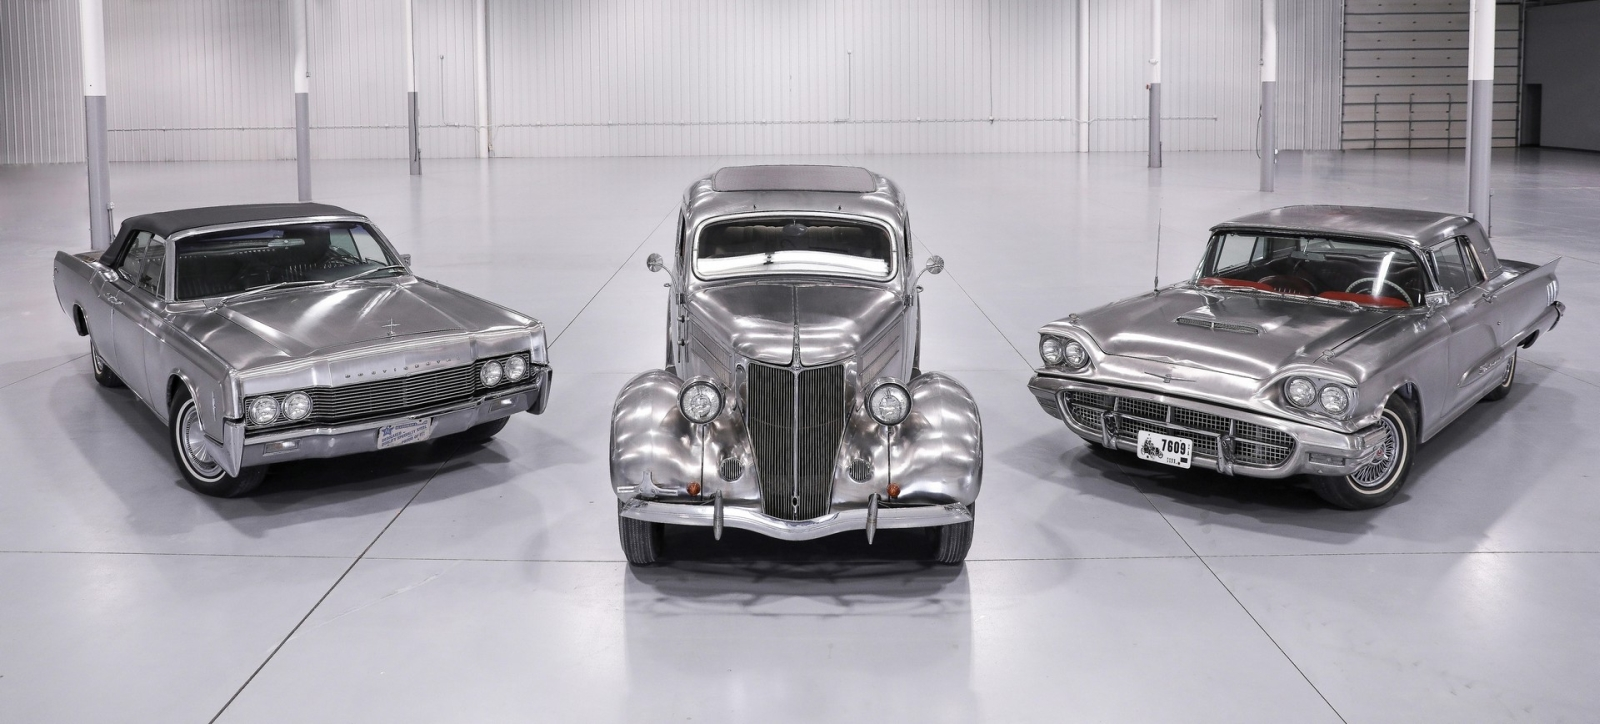 Stainless-Steel-Fords-1